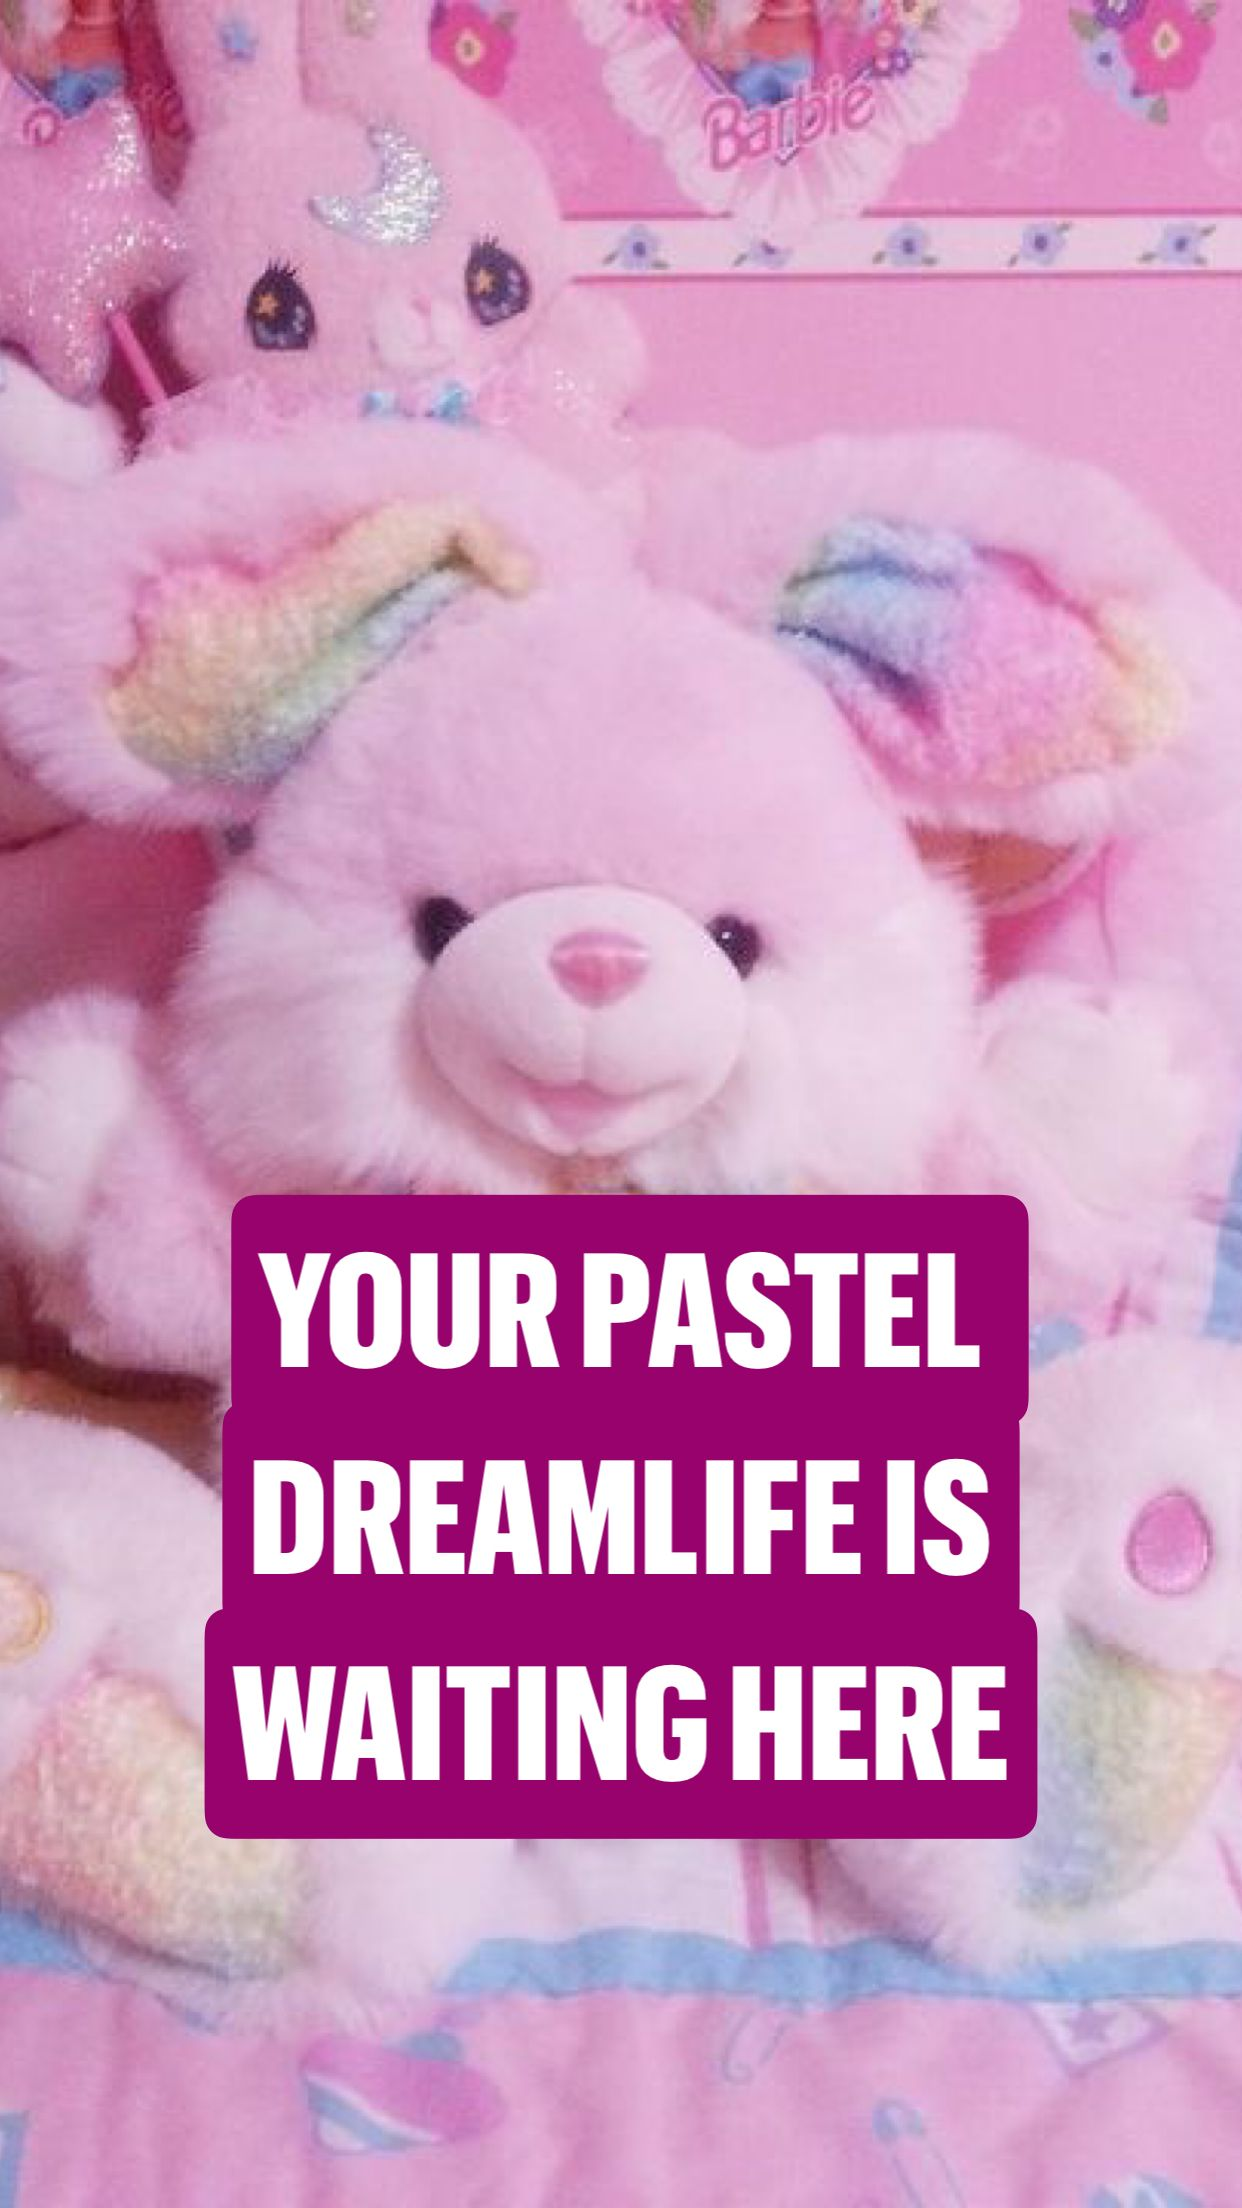 YOUR PASTEL DREAMLIFE IS WAITING HERE